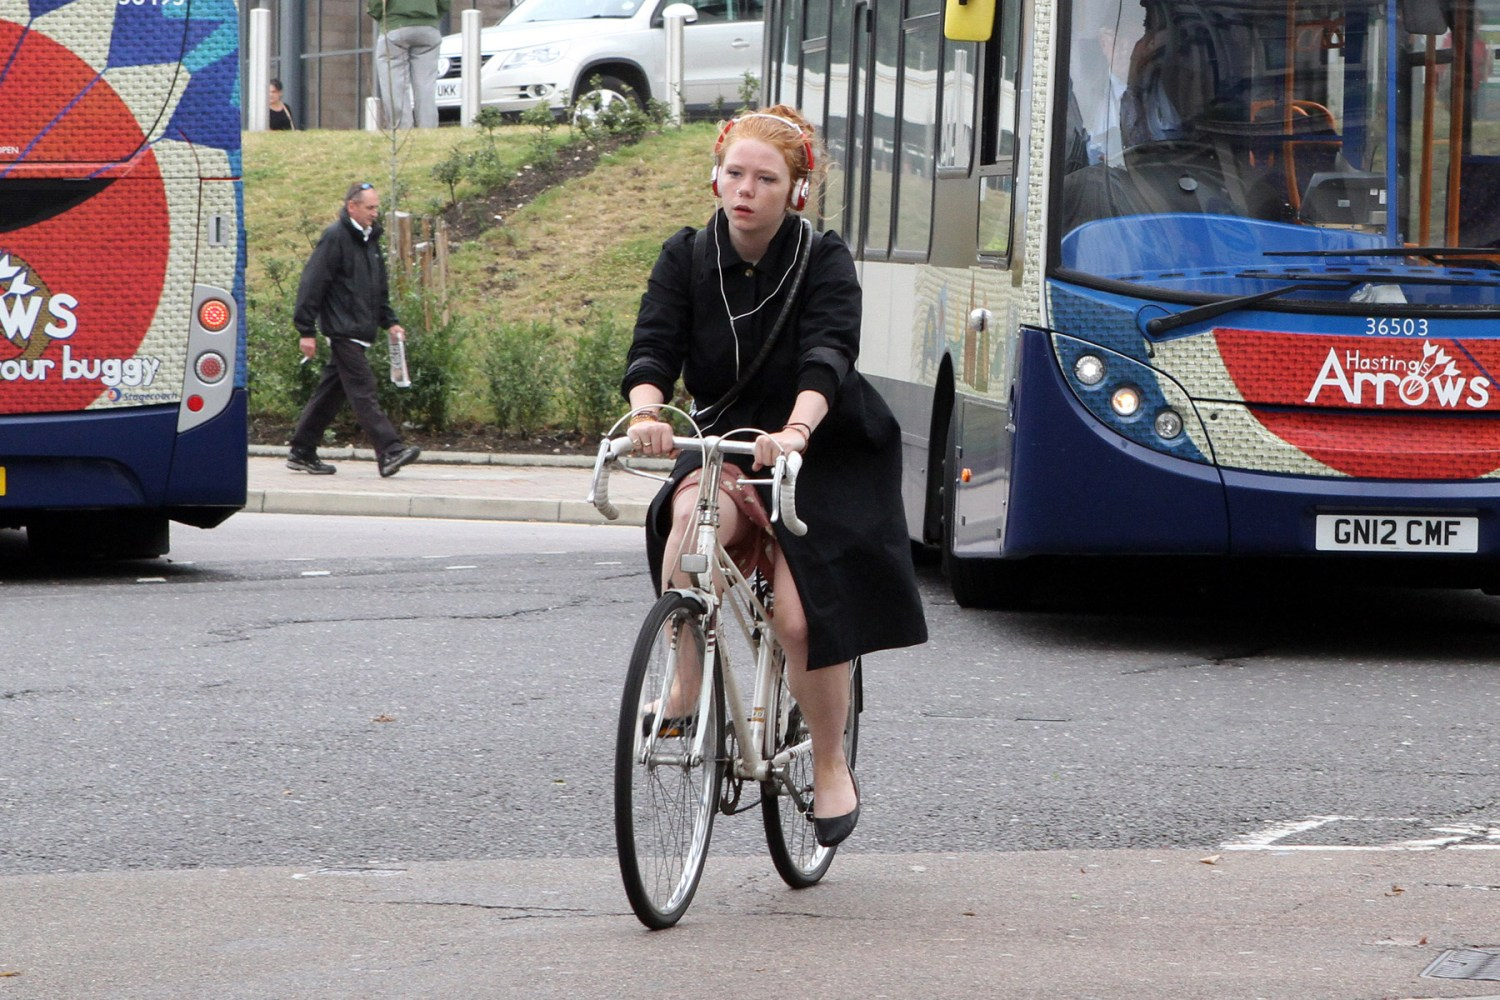 Should the Government introduce a minimum cyclist passing distance?